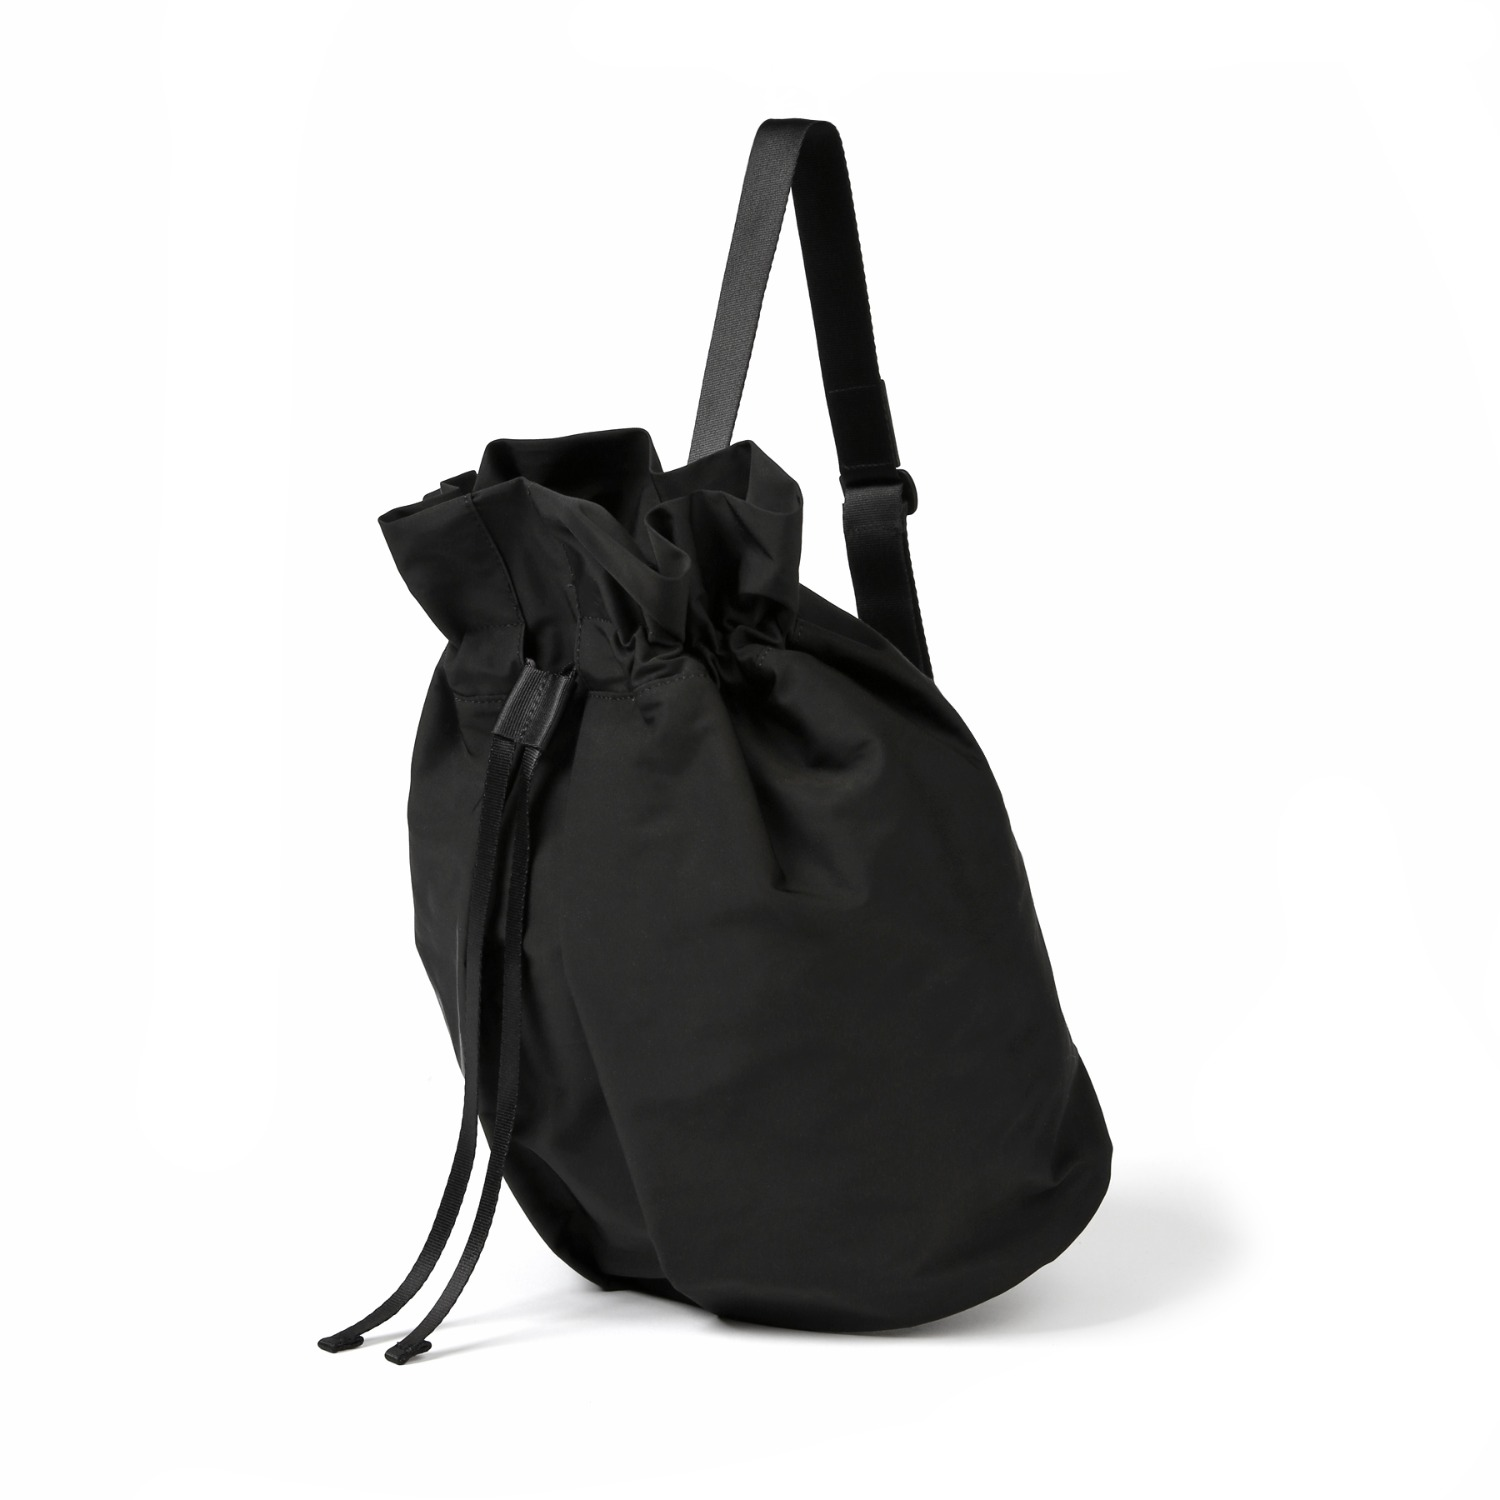 3WAY STRING BAG / WRINKLE / PC / BLACK